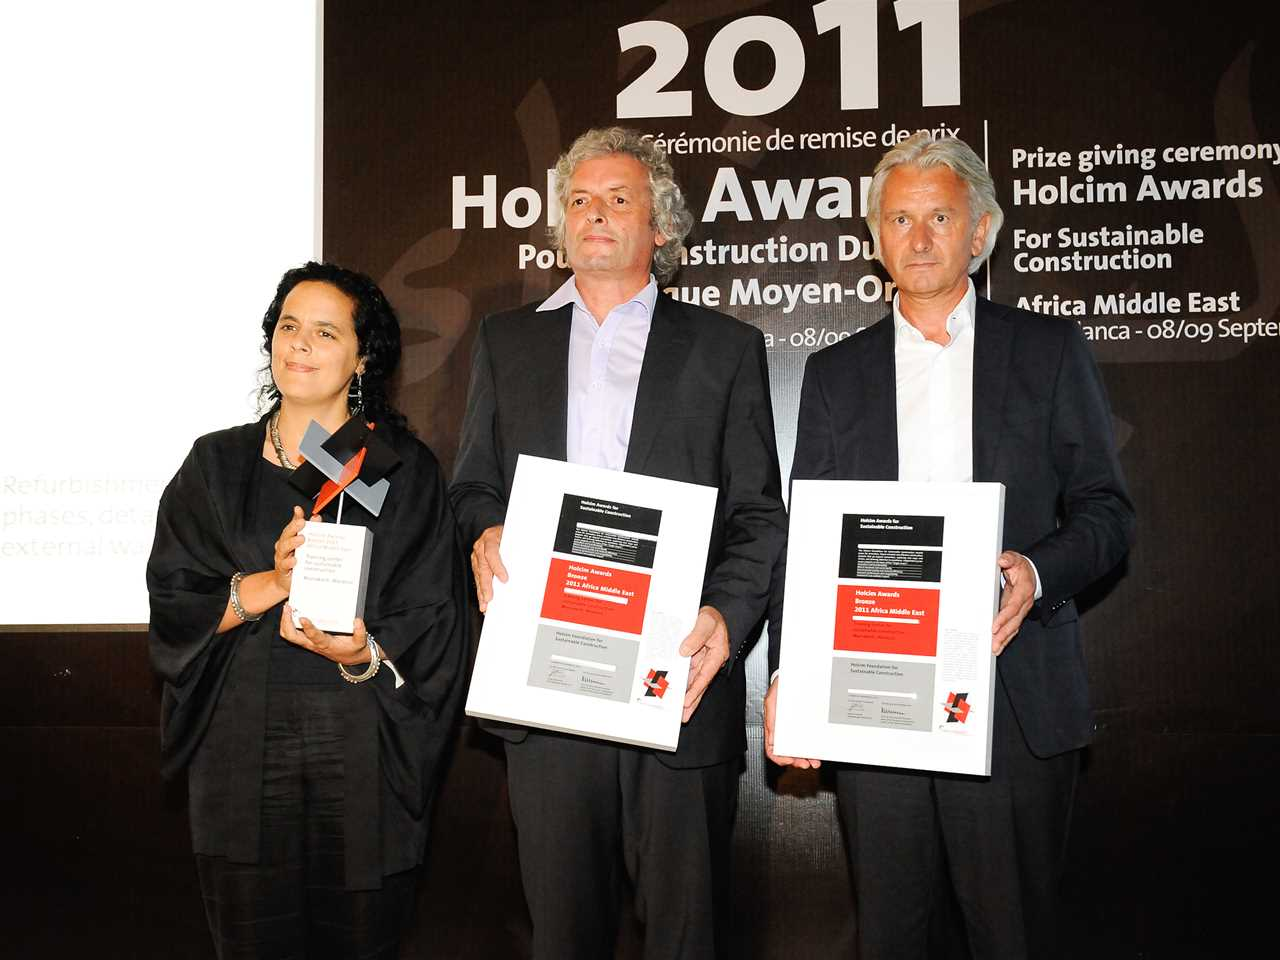 Representatives of the Holcim Awards Bronze 2011 Africa Middle East winner 'Training center for …